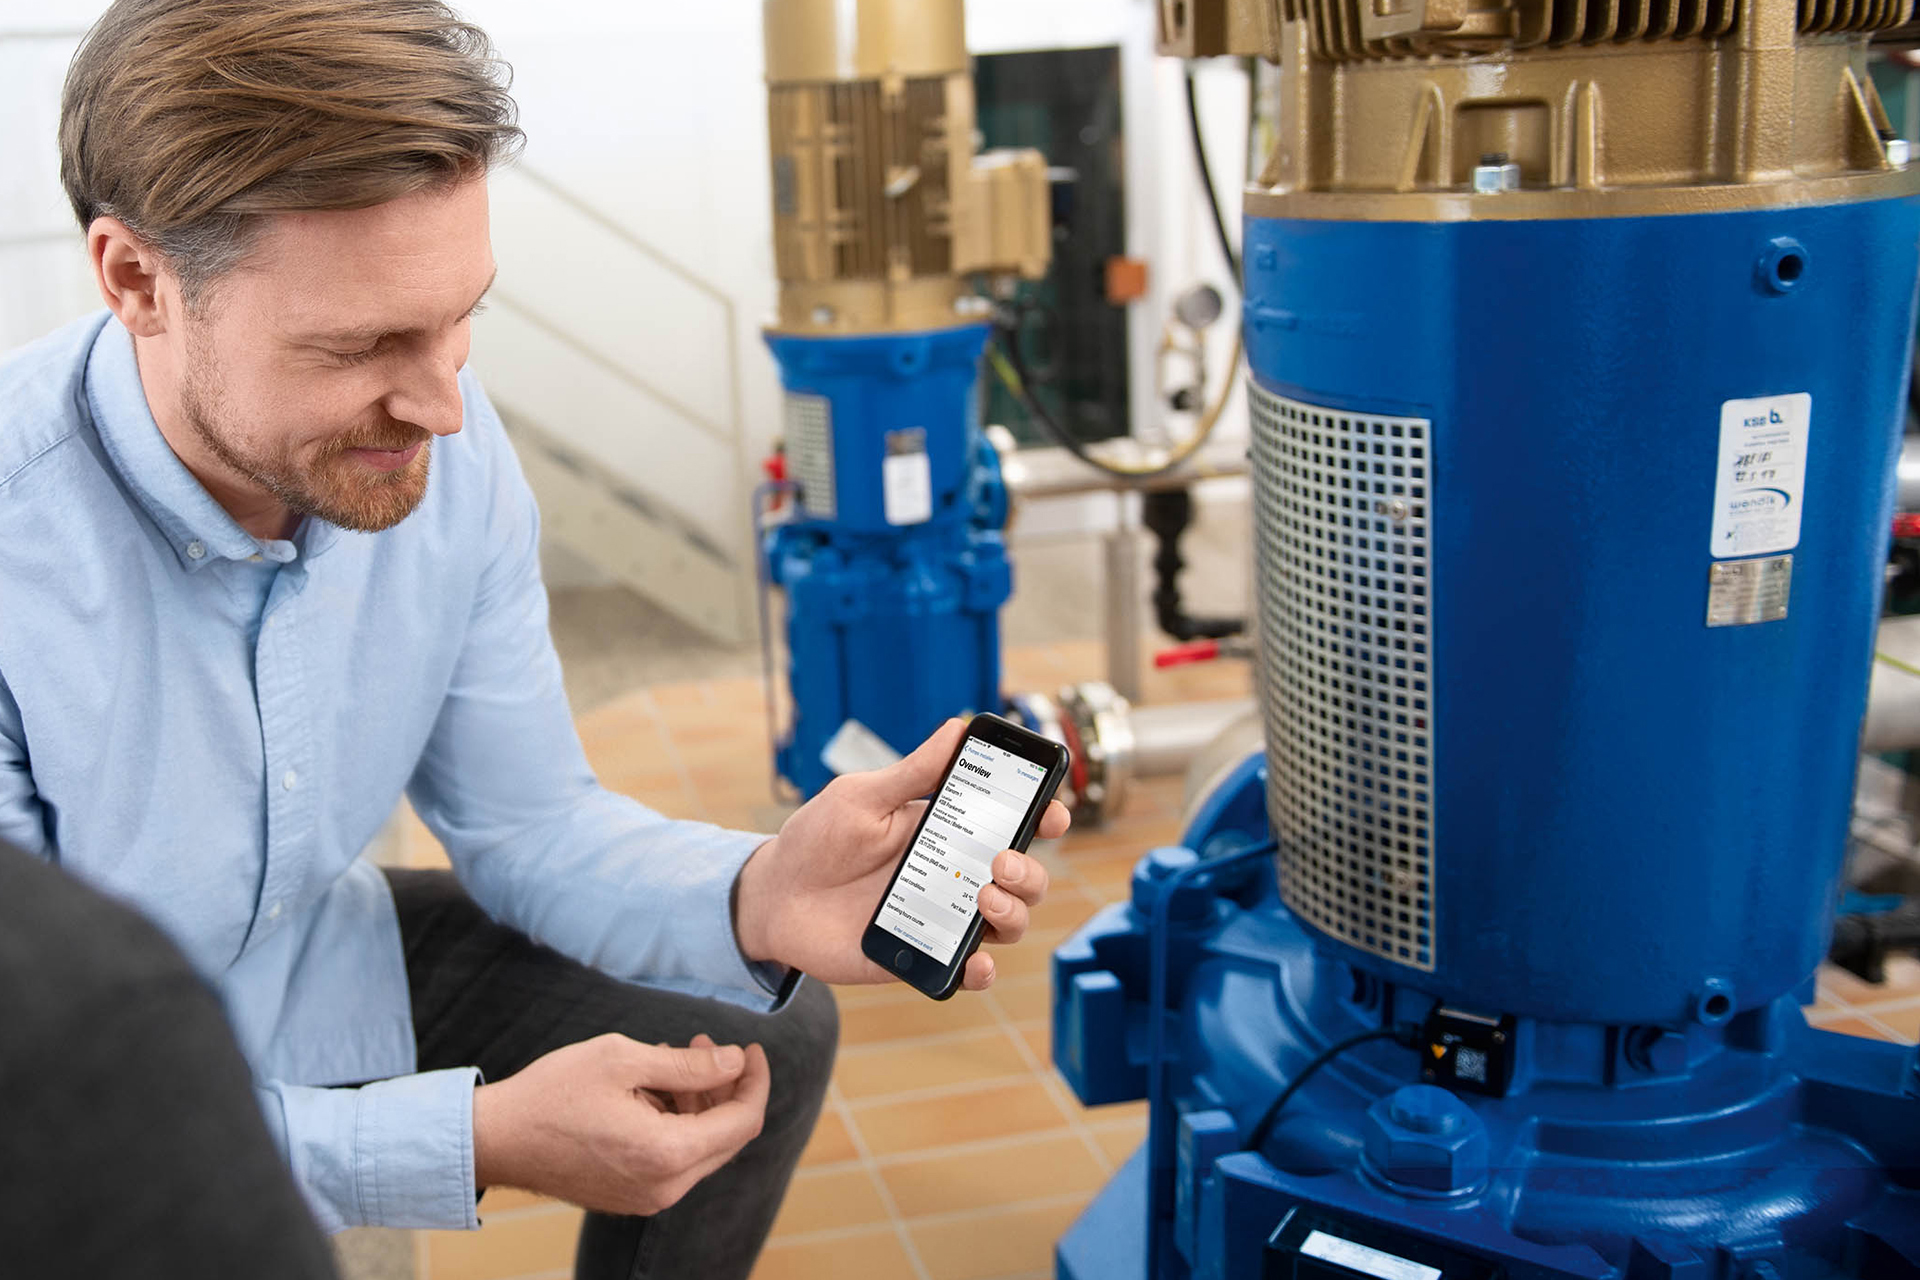 A system operator with a smartphone standing next to a pump equipped with KSB Guard